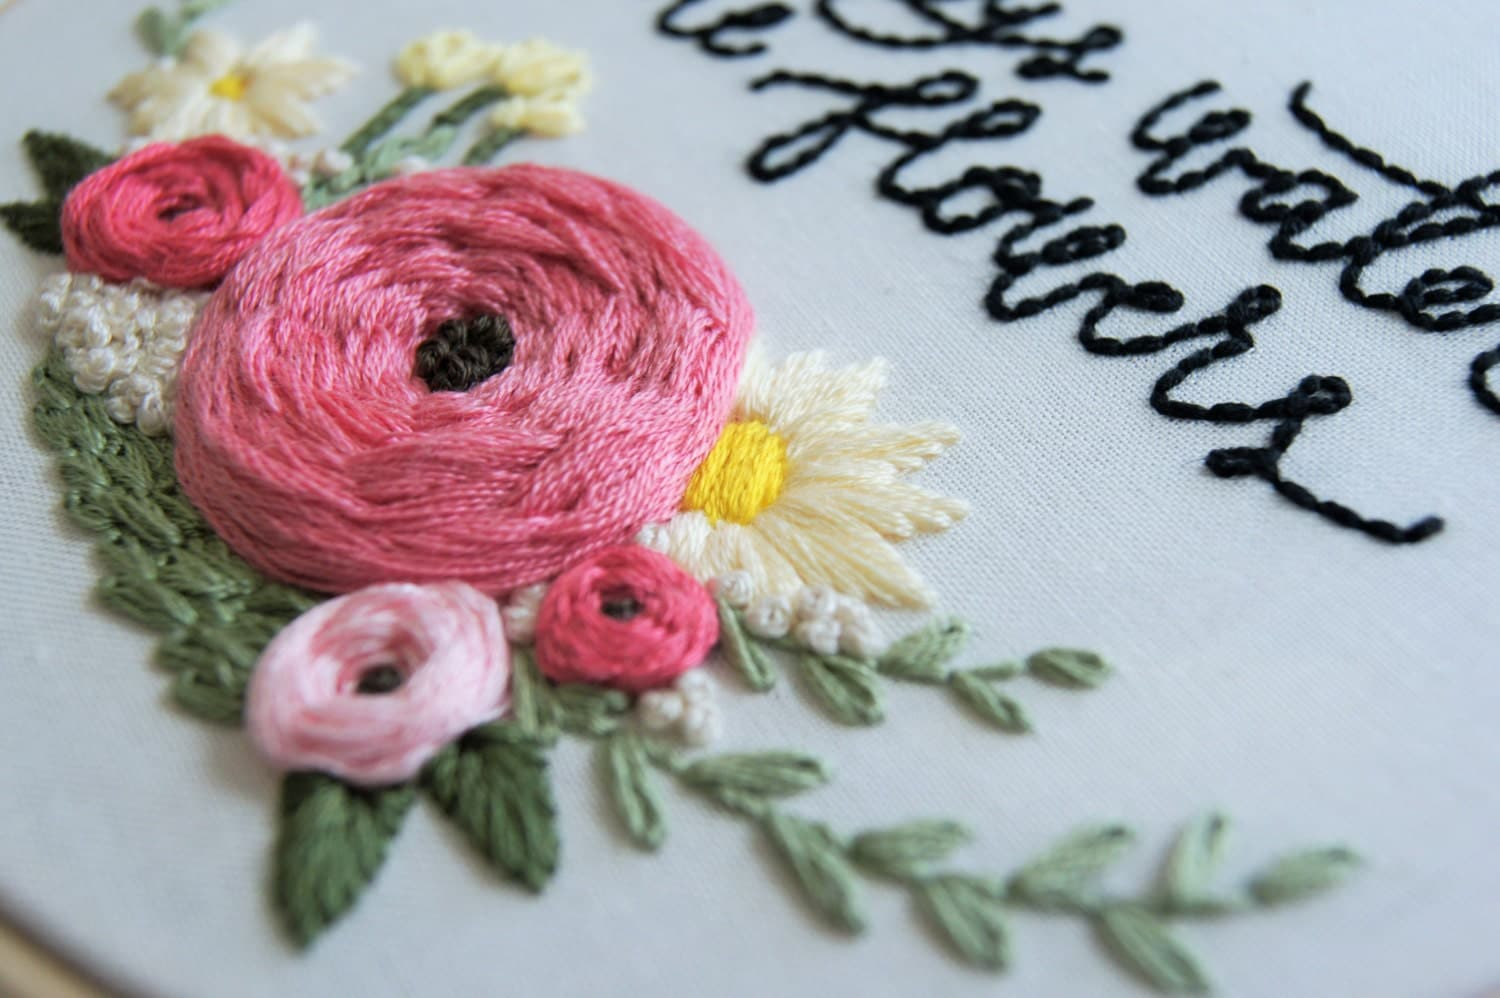 Hand Embroidery Pattern, Floral Wreath Pattern, Embroidery Supplies, Hand  Embroidery, Embroidery Hoop